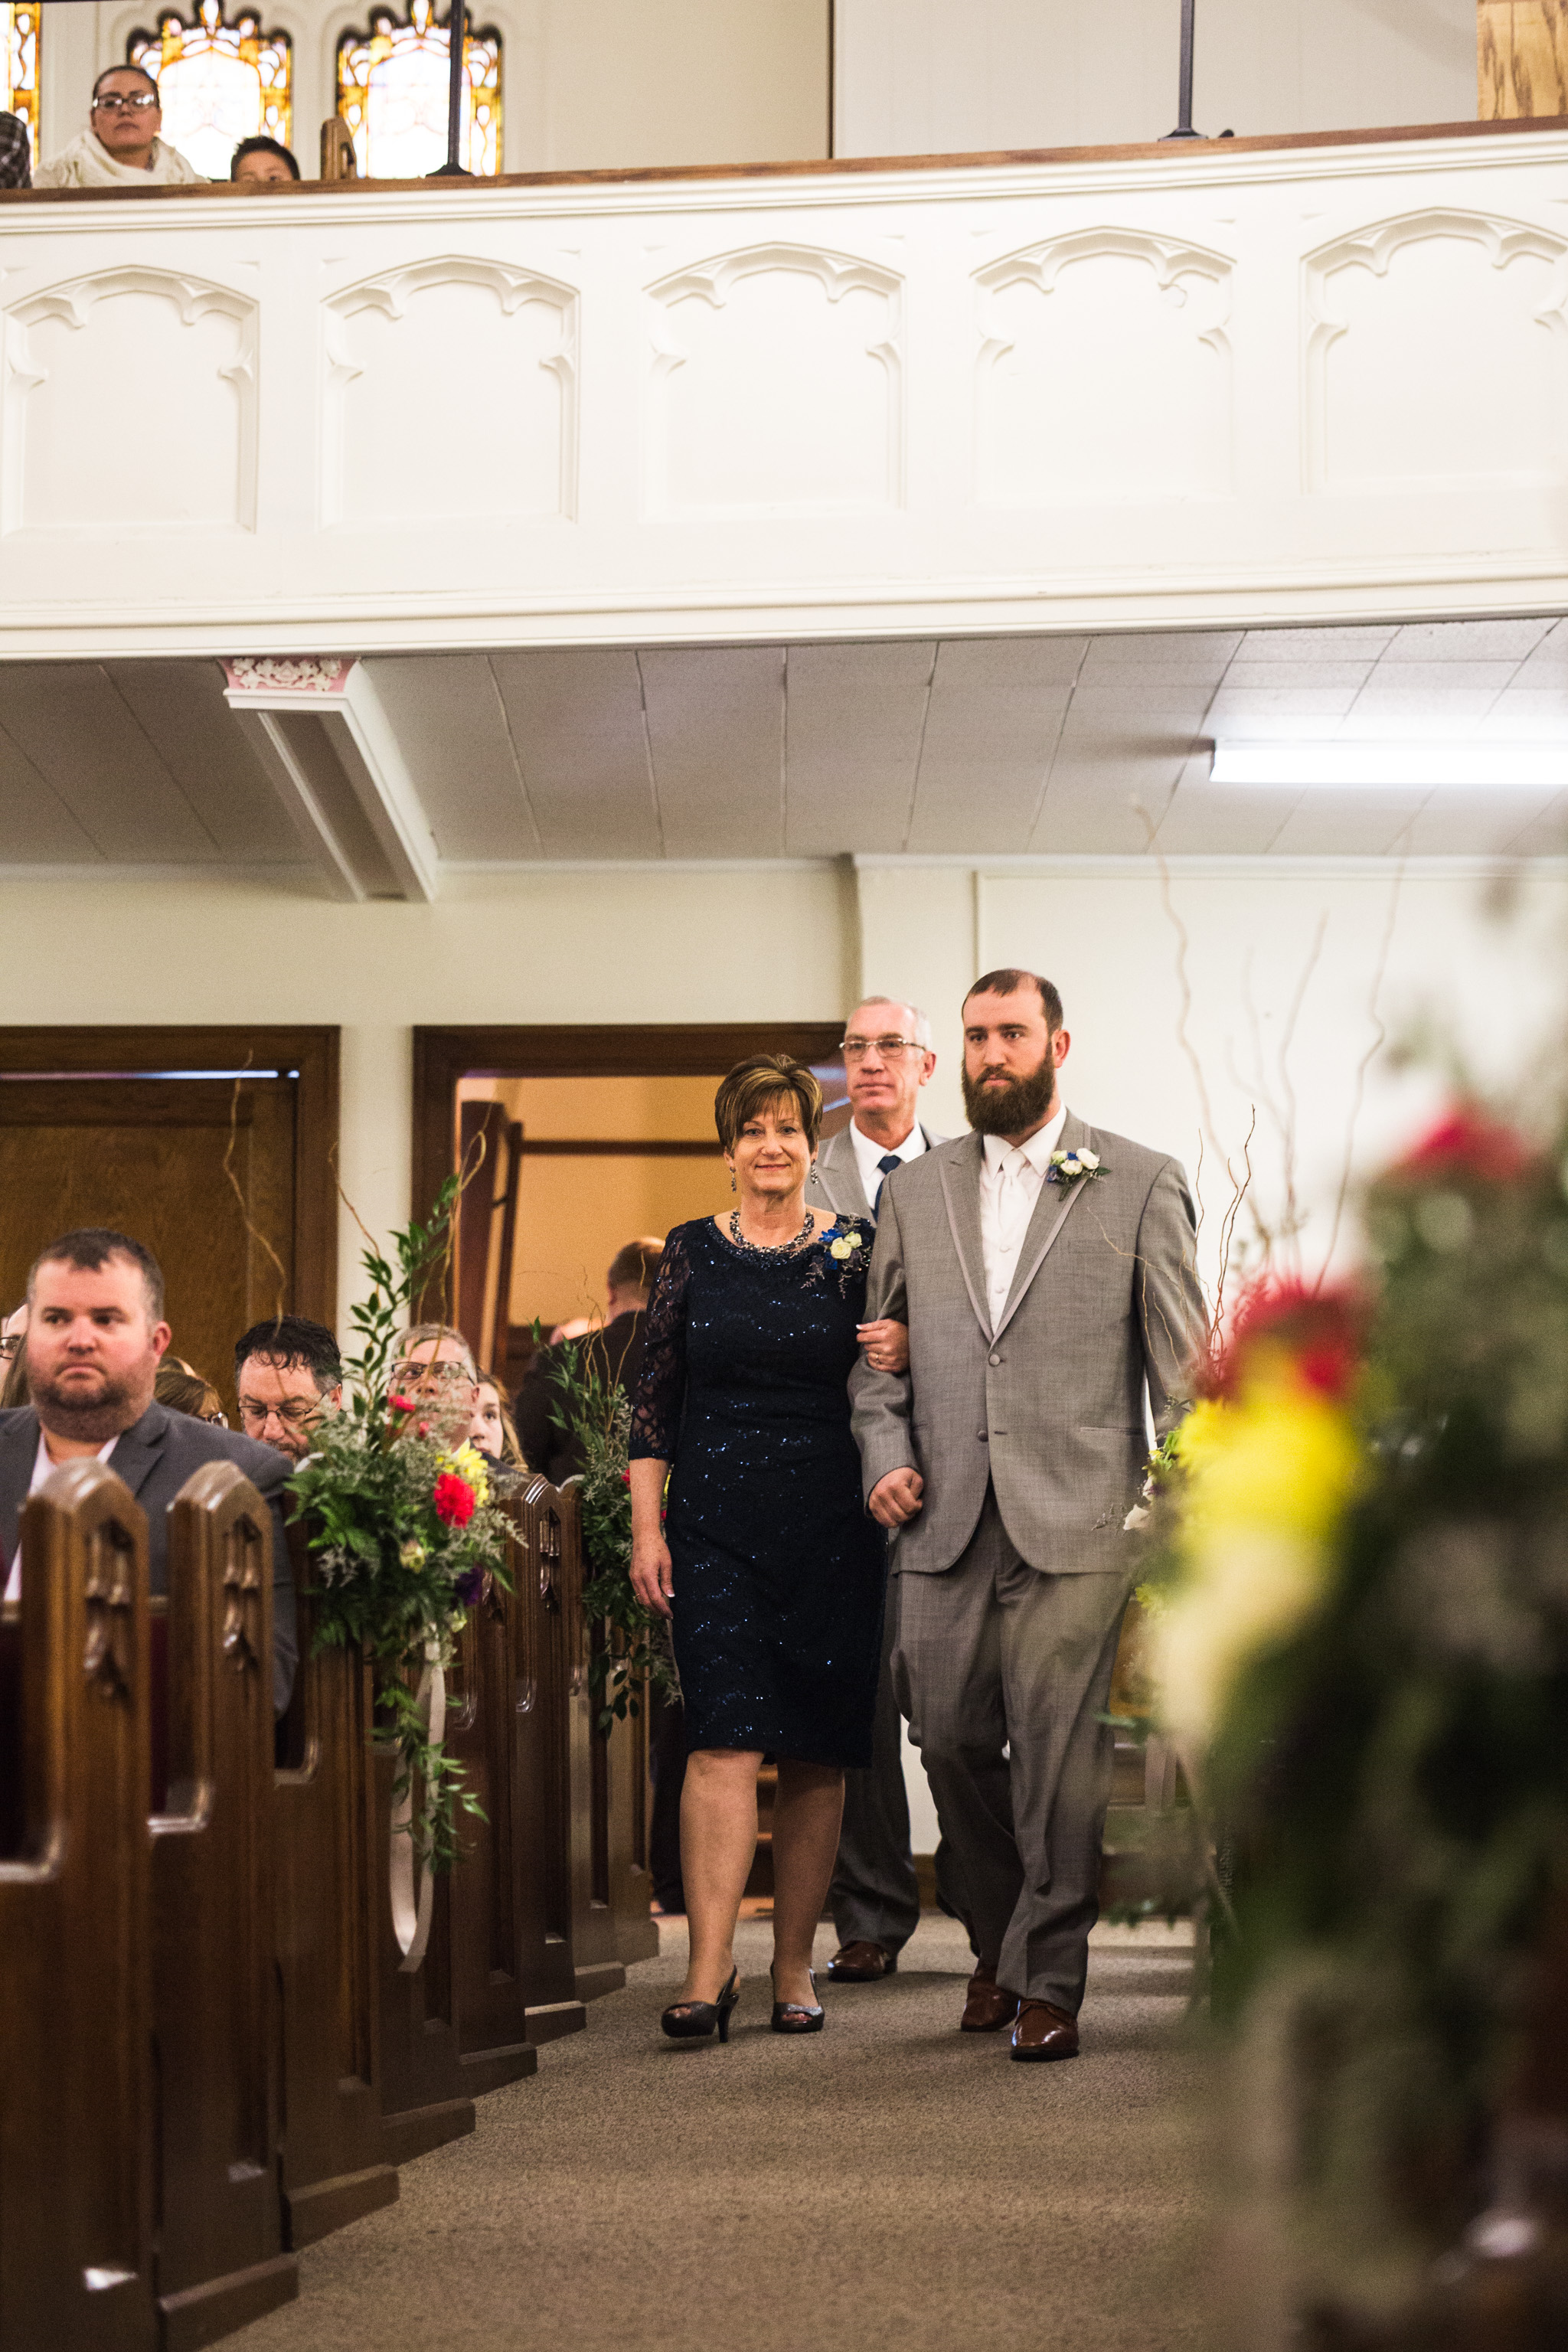 Zibell Spring Wedding, Bride and Groom, Powerful, Connected, Exploration, Laura Duggleby Photography -118.JPG